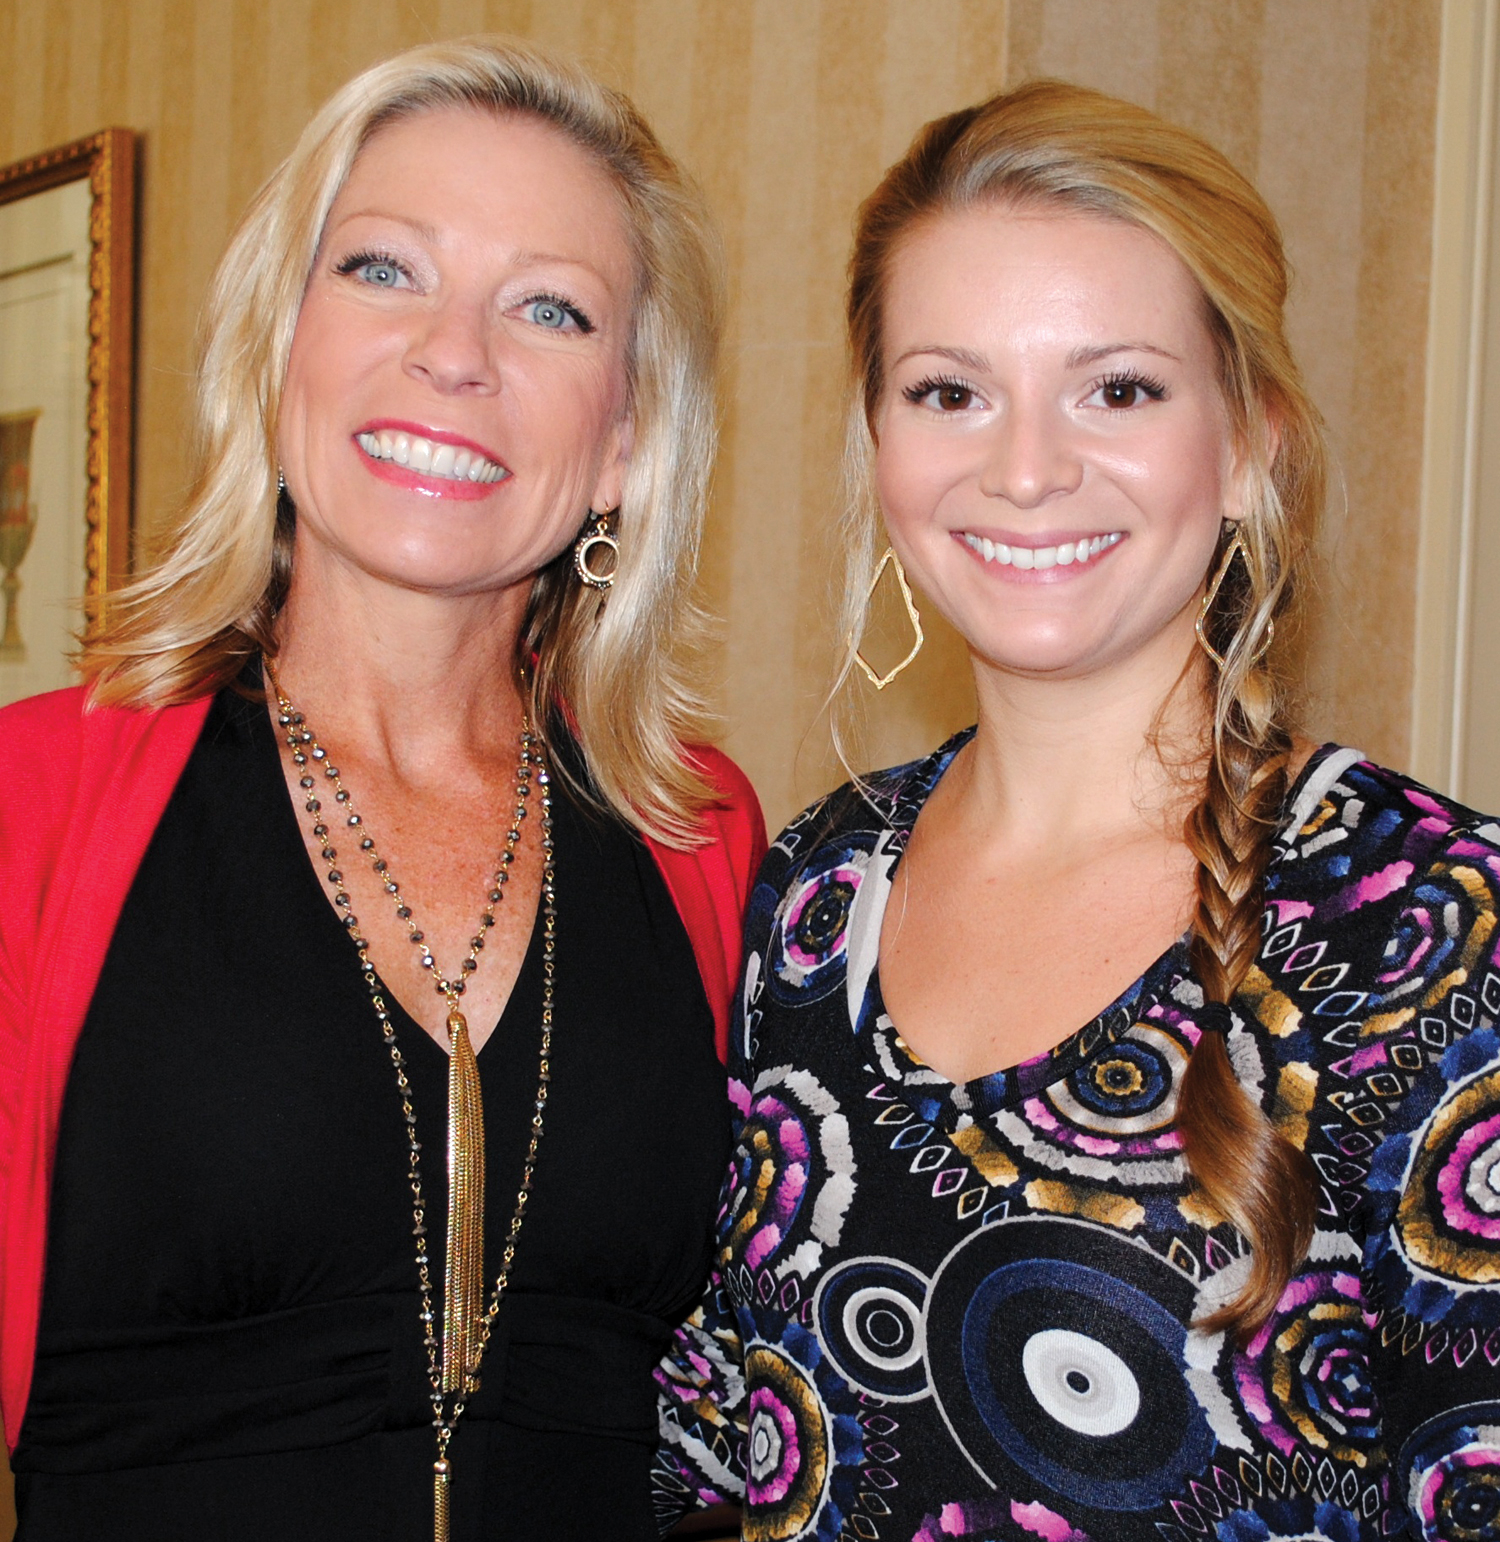 Jodie Schnabel, left, and Tori Buttle look for their table at the Bay Oaks Women's Association style show luncheon.